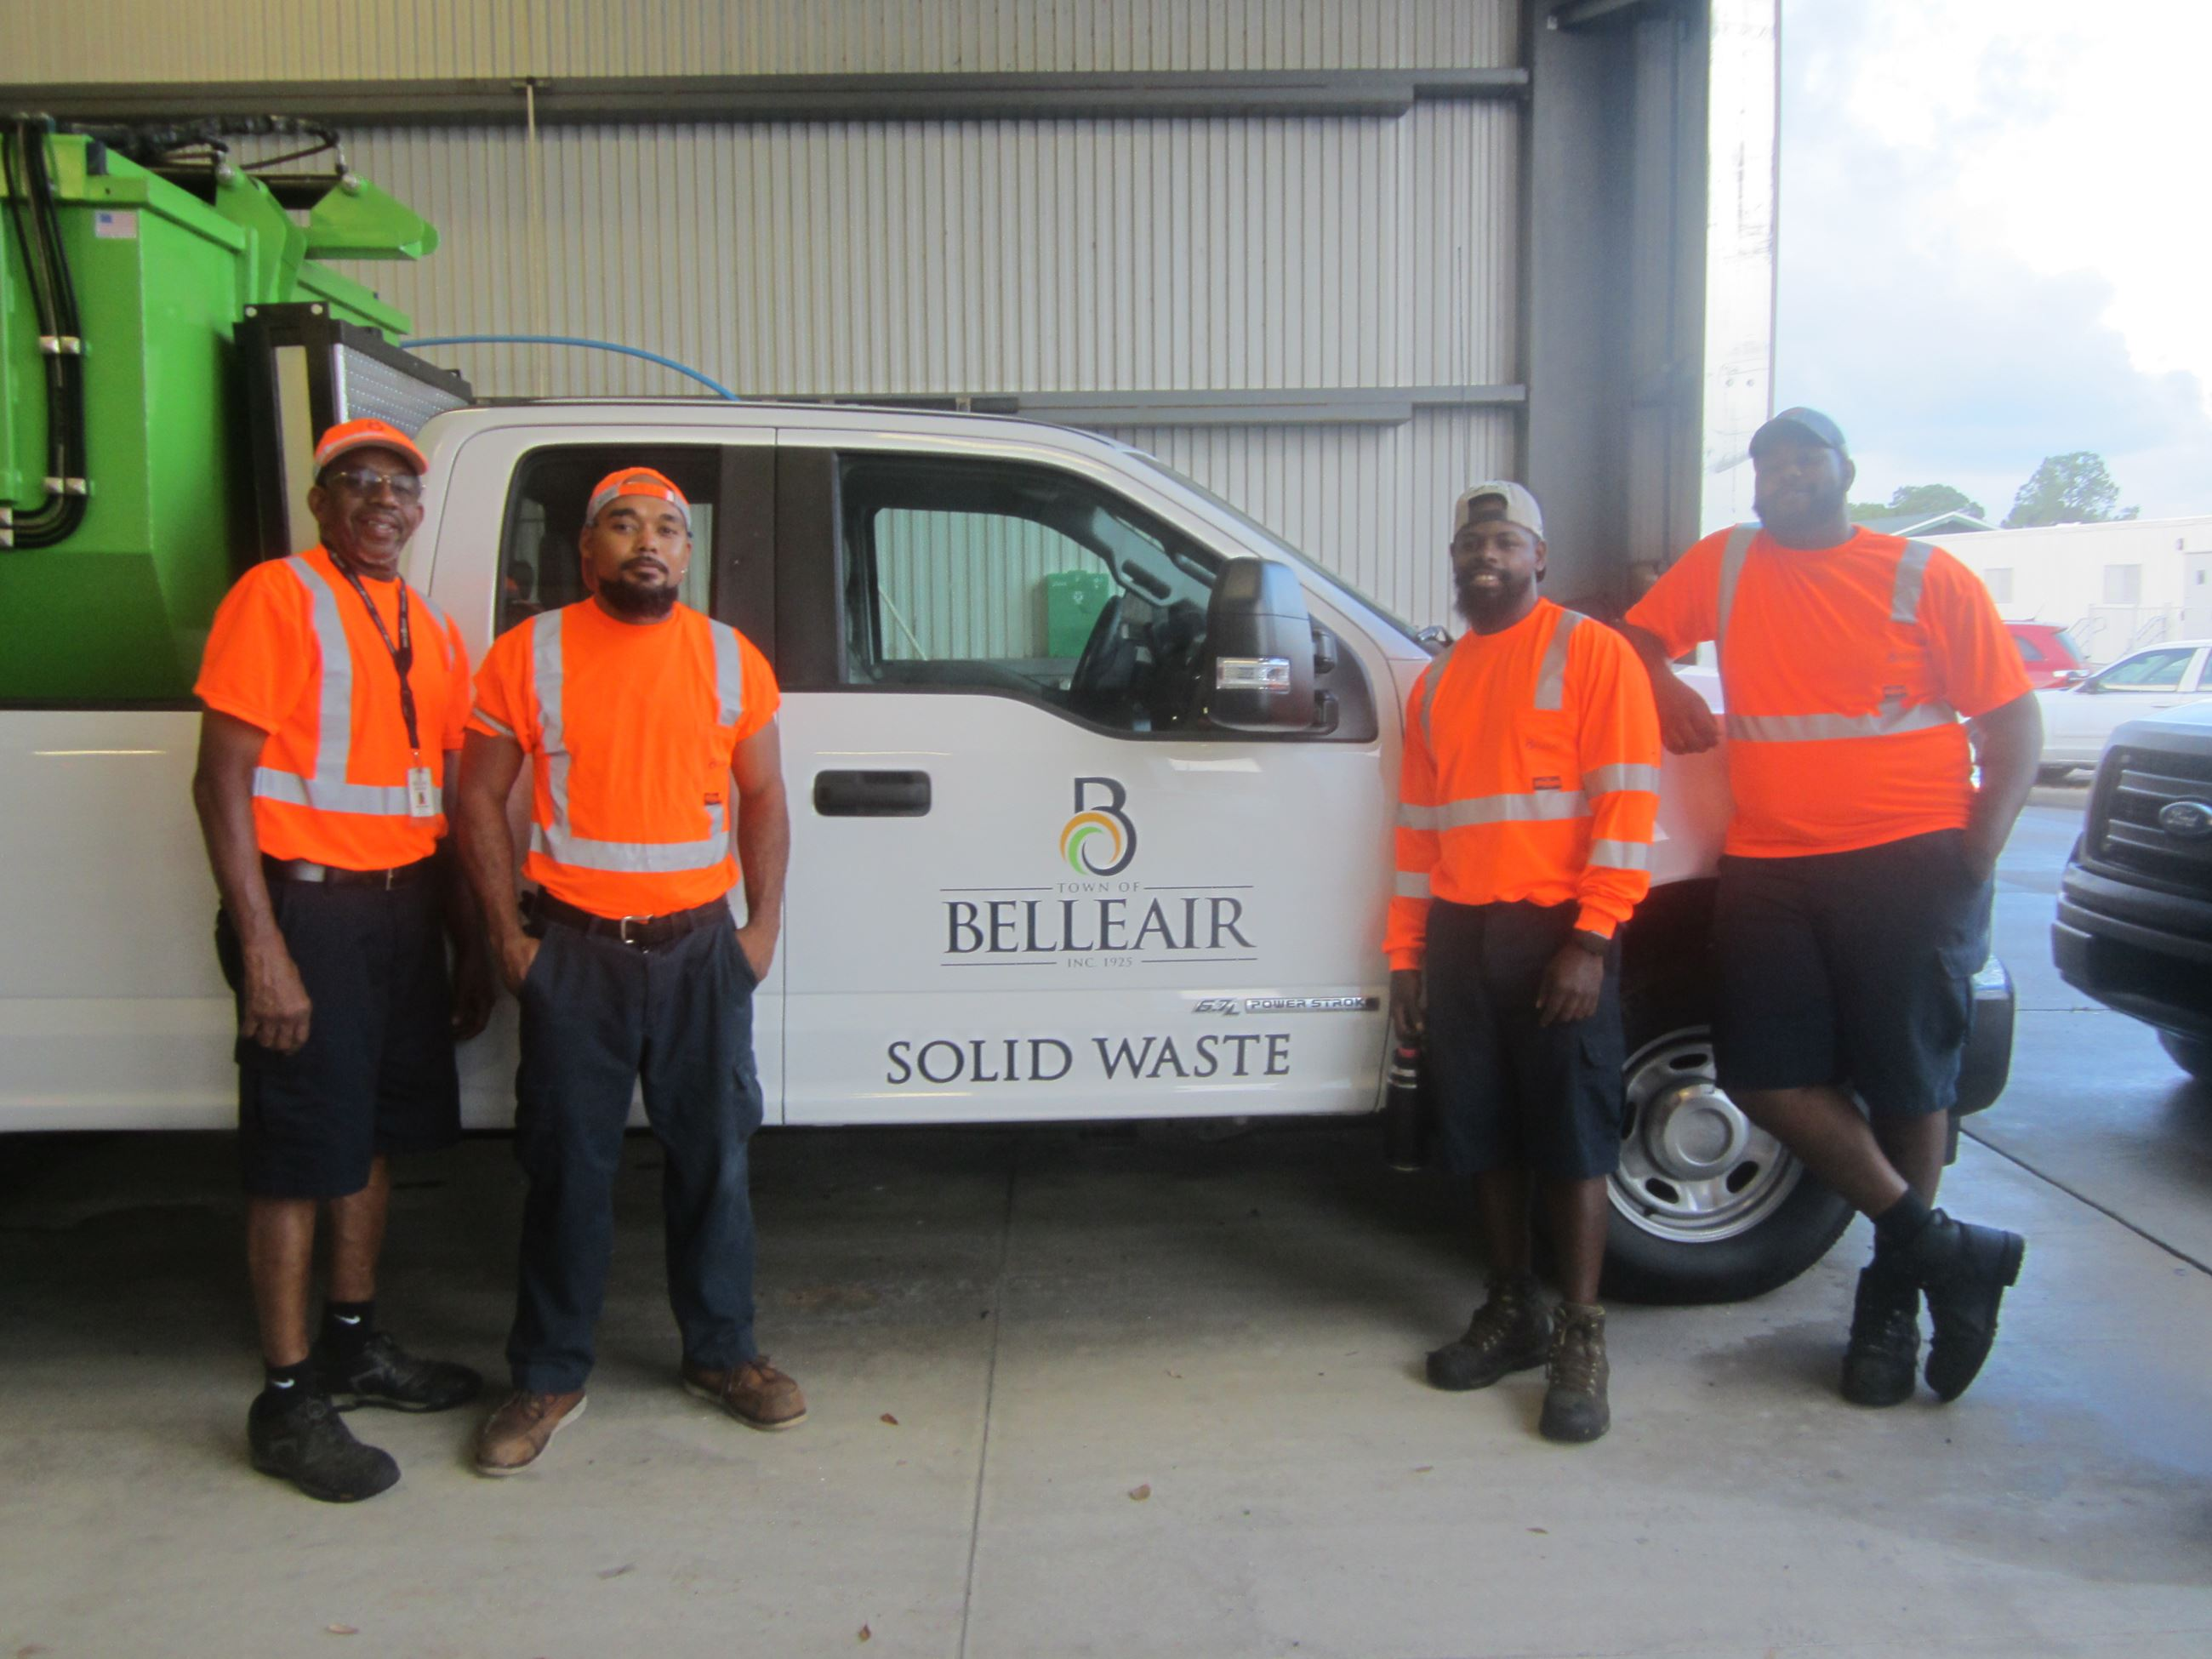 Four members of Belleair's Solid Waste Department smile in front of the Town's satellite picku